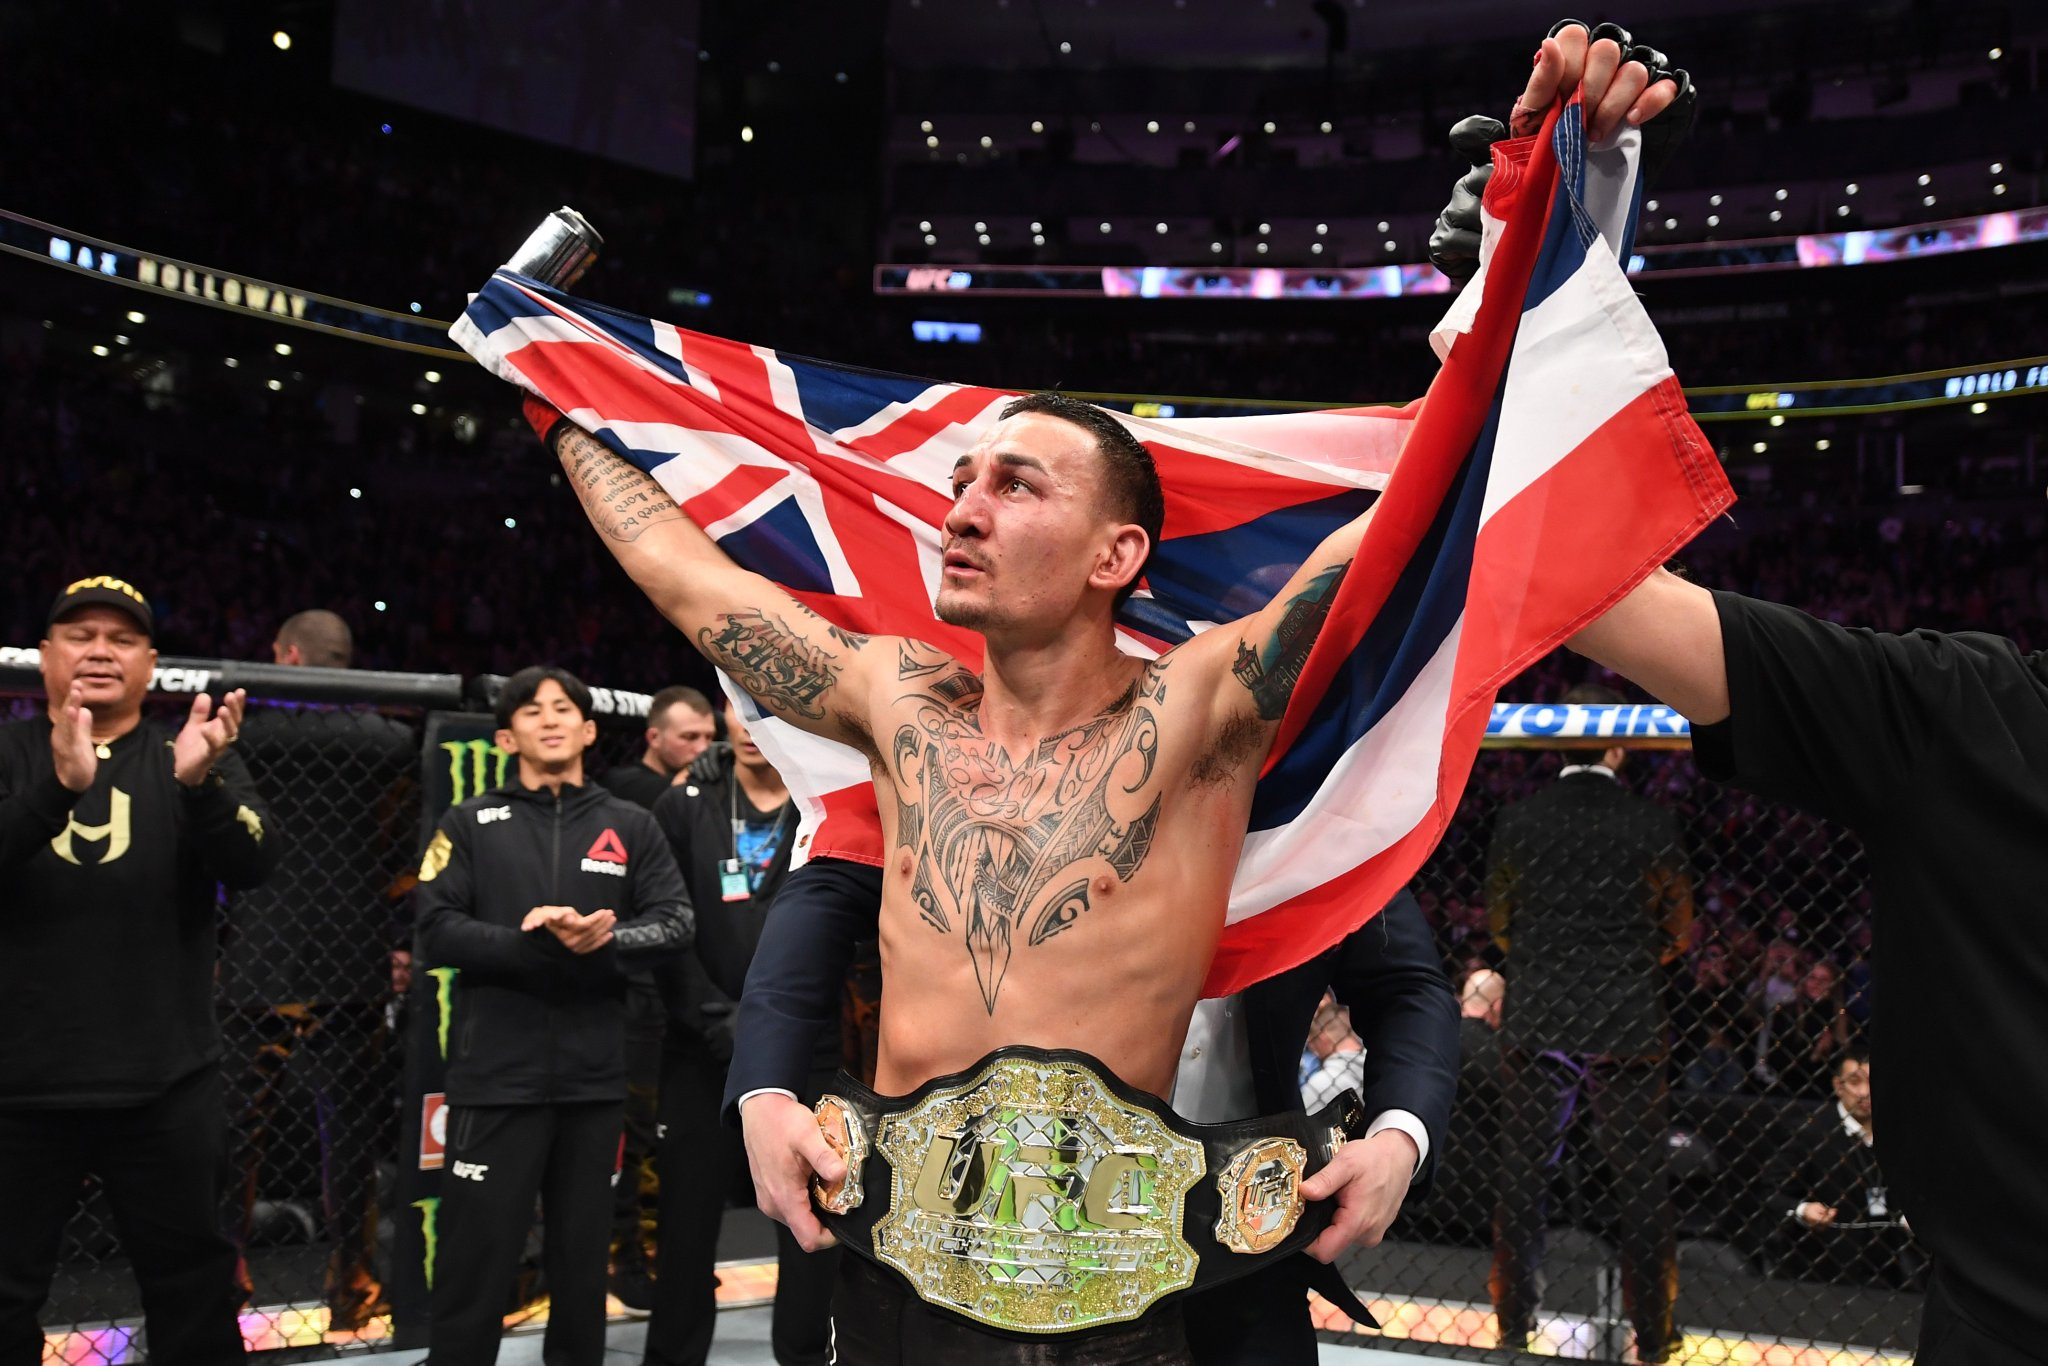 UFC 231 'Holloway vs. Ortega' Results - Holloway Batters Ortega in a Four Round War, Retains the Belt - holloway